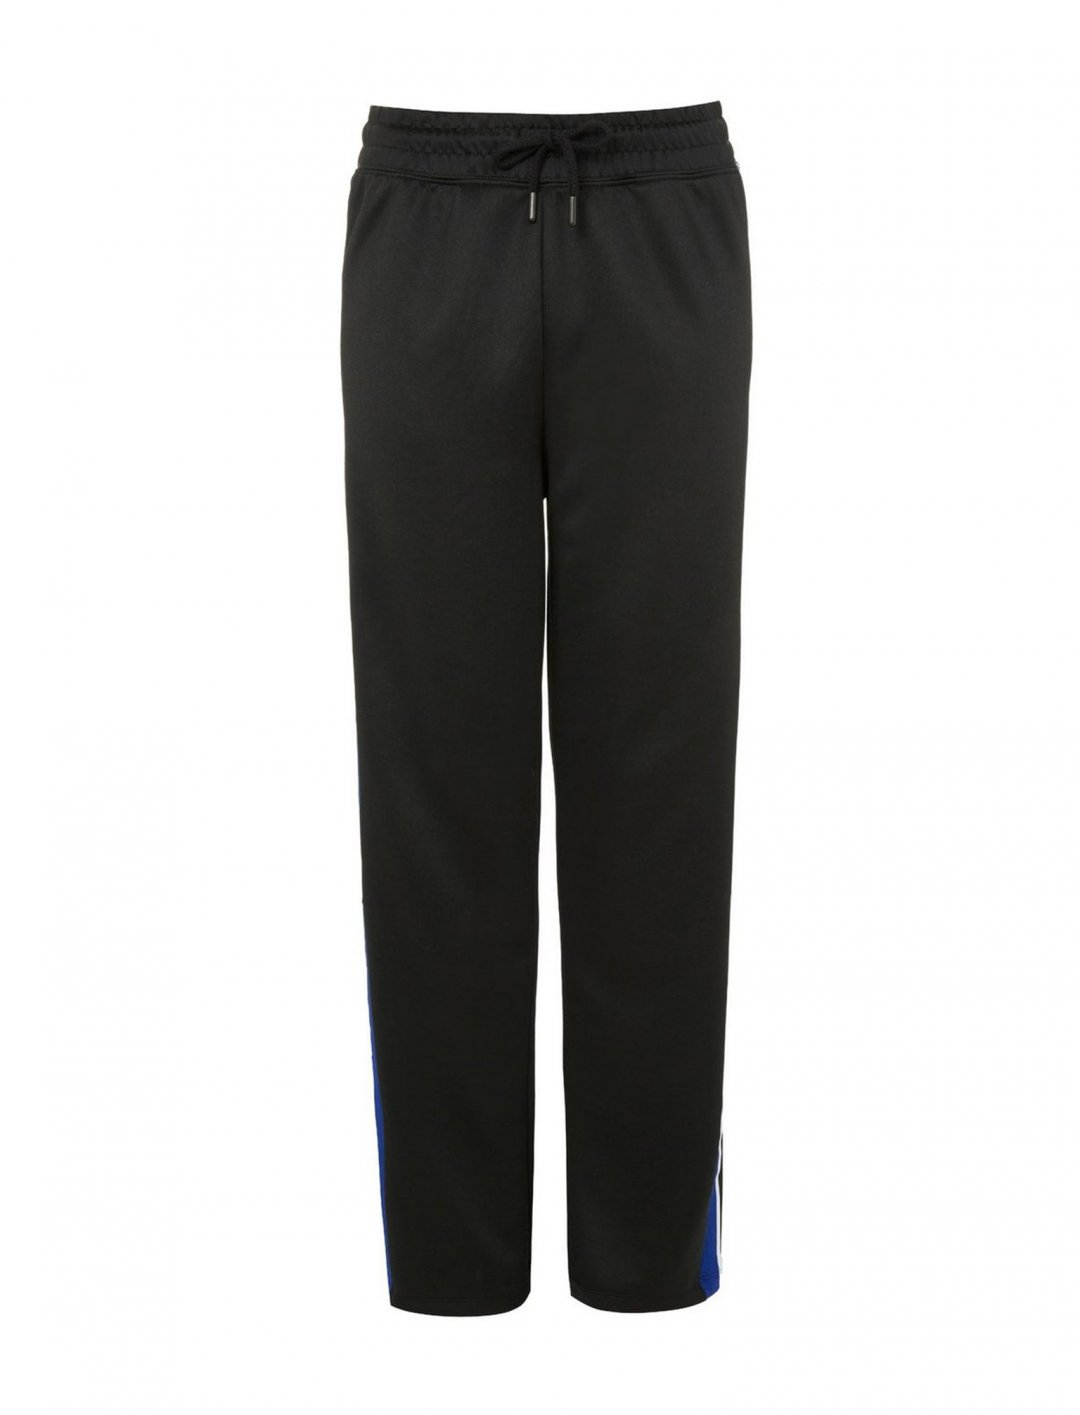 "Topshop Track Pants {""id"":5,""product_section_id"":1,""name"":""Clothing"",""order"":5} Topshop"